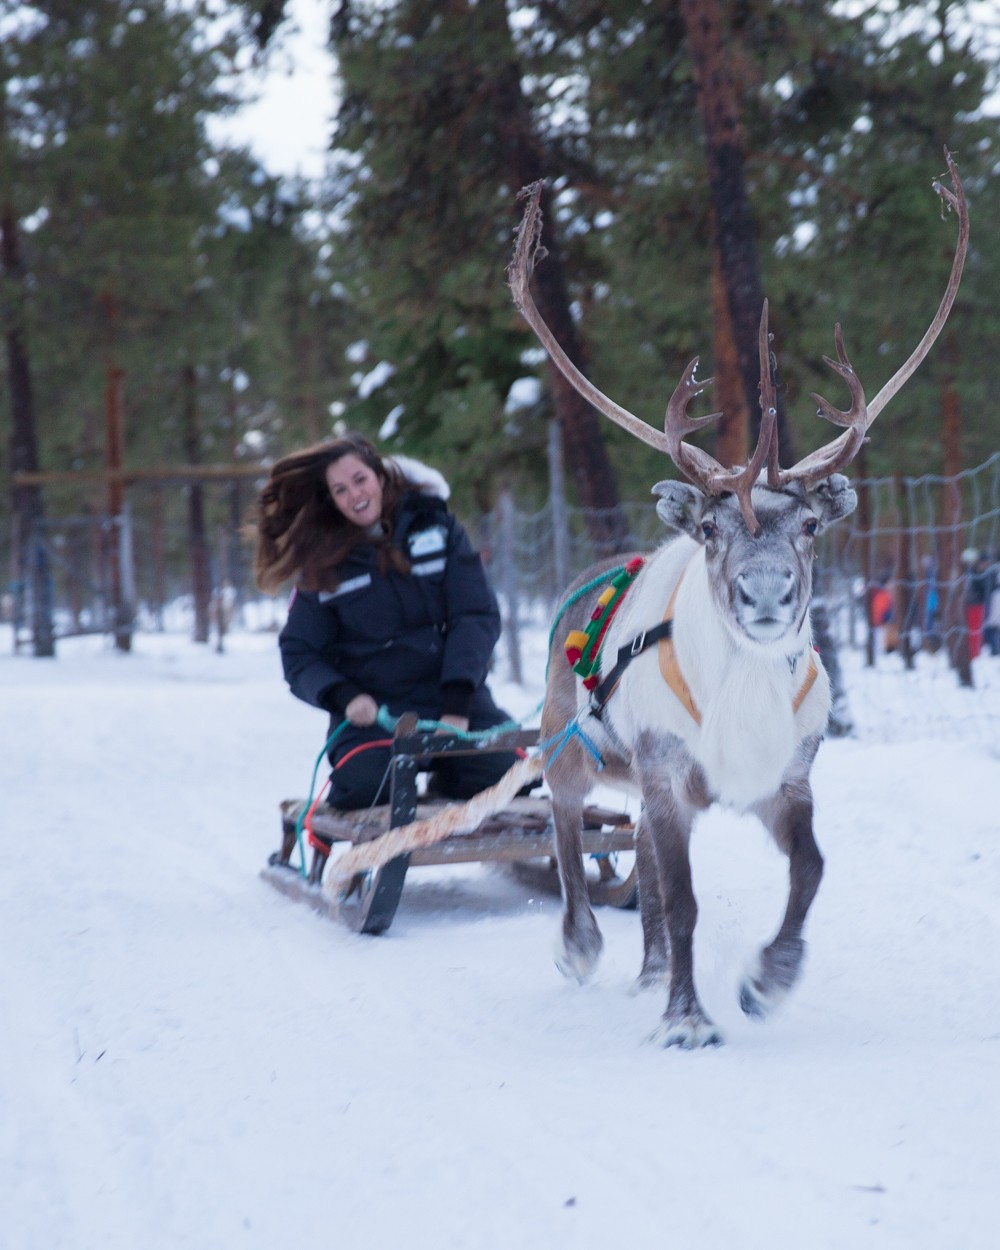 Reindeer and Saunas in Sweden -13